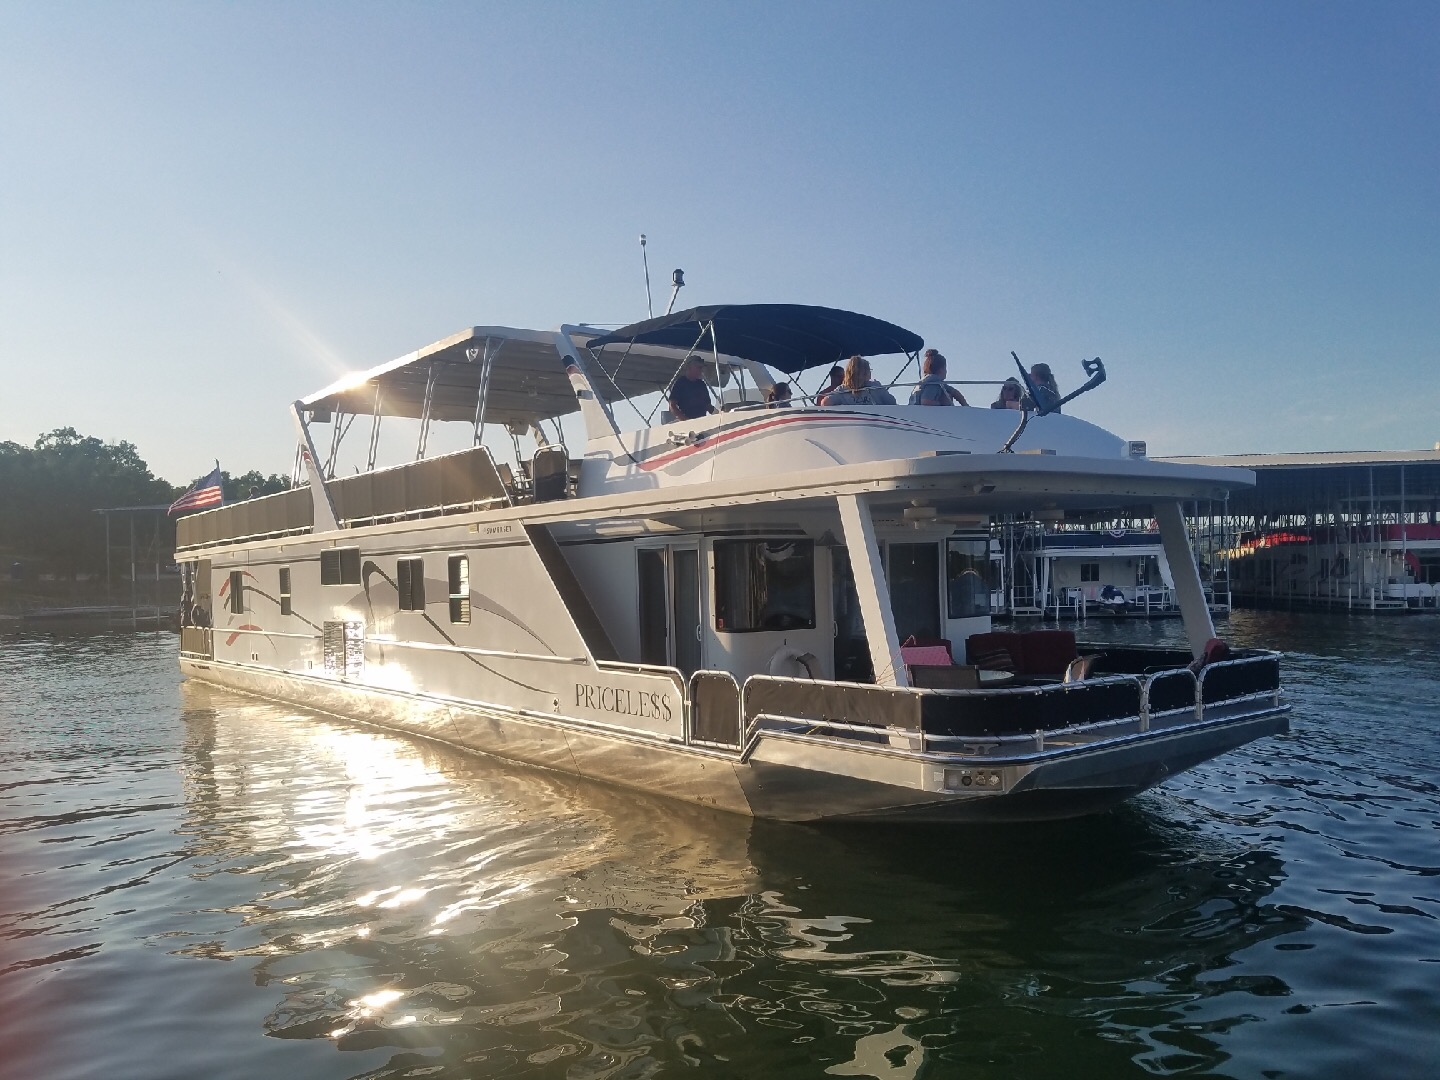 Houseboat for sale in Missouri - Boat Trader